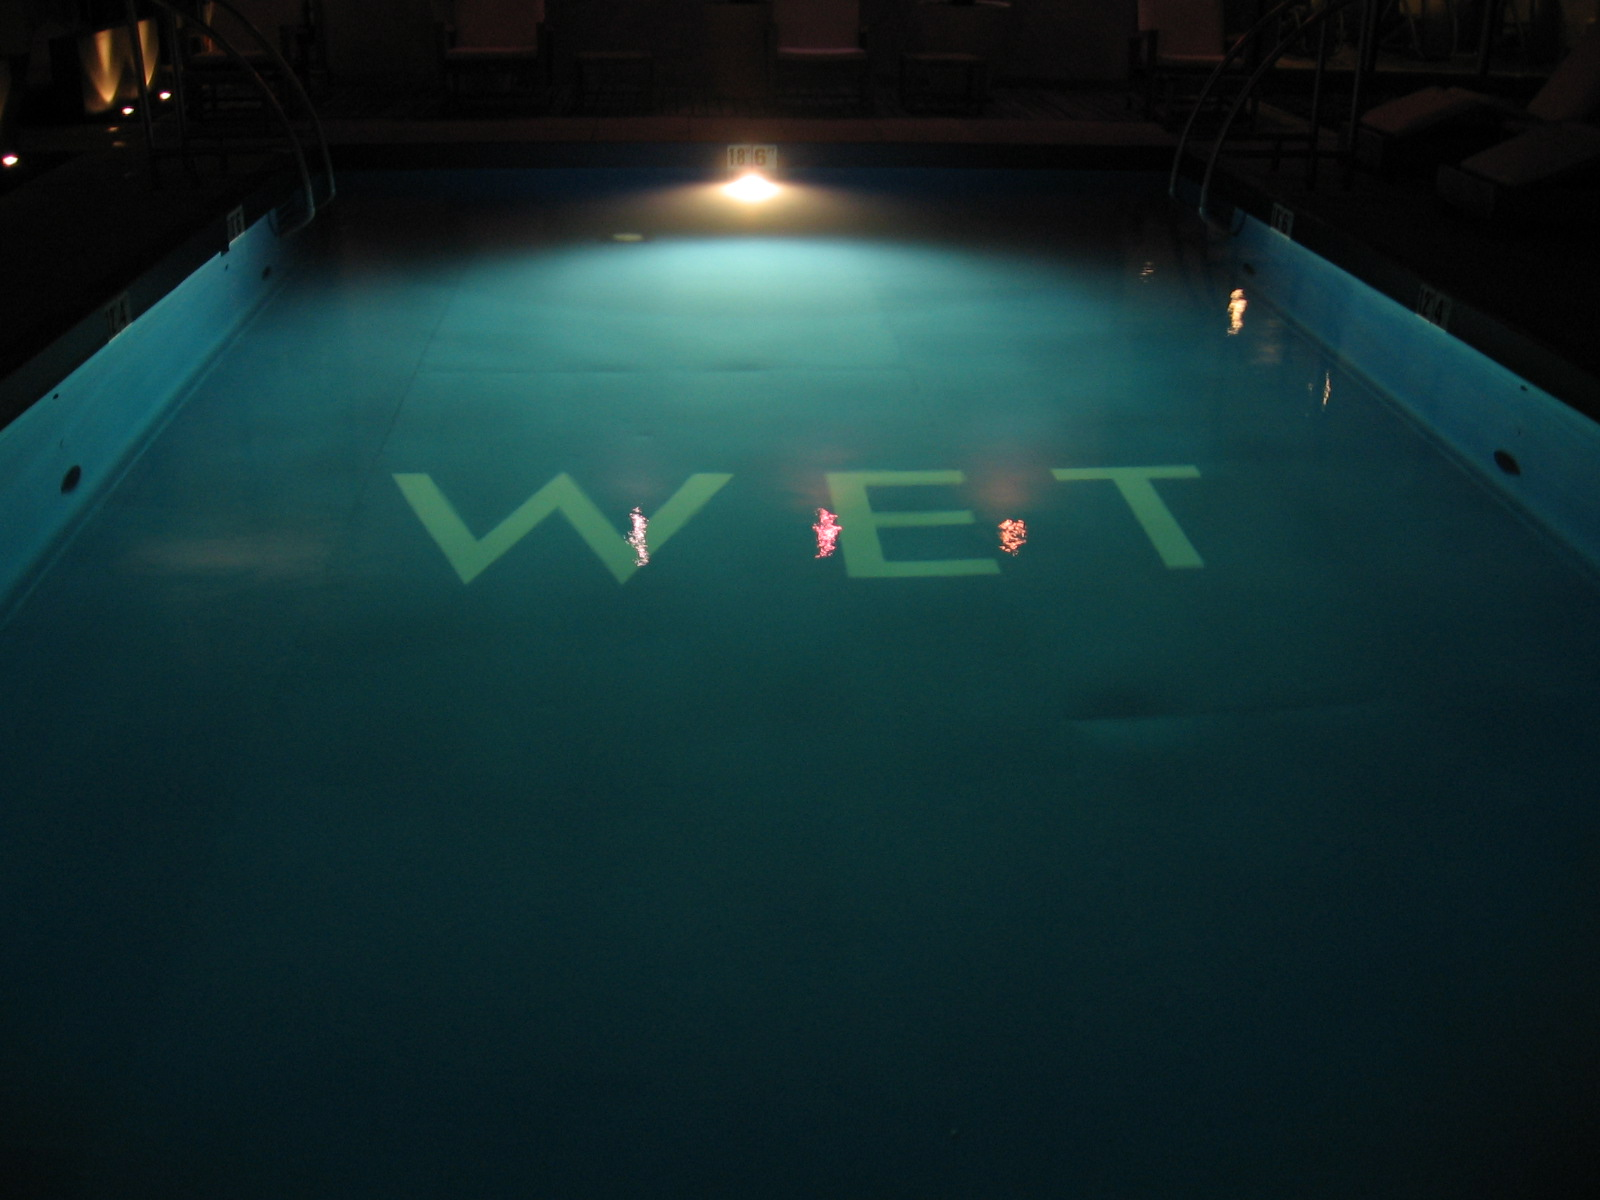 W hotel swimming pool